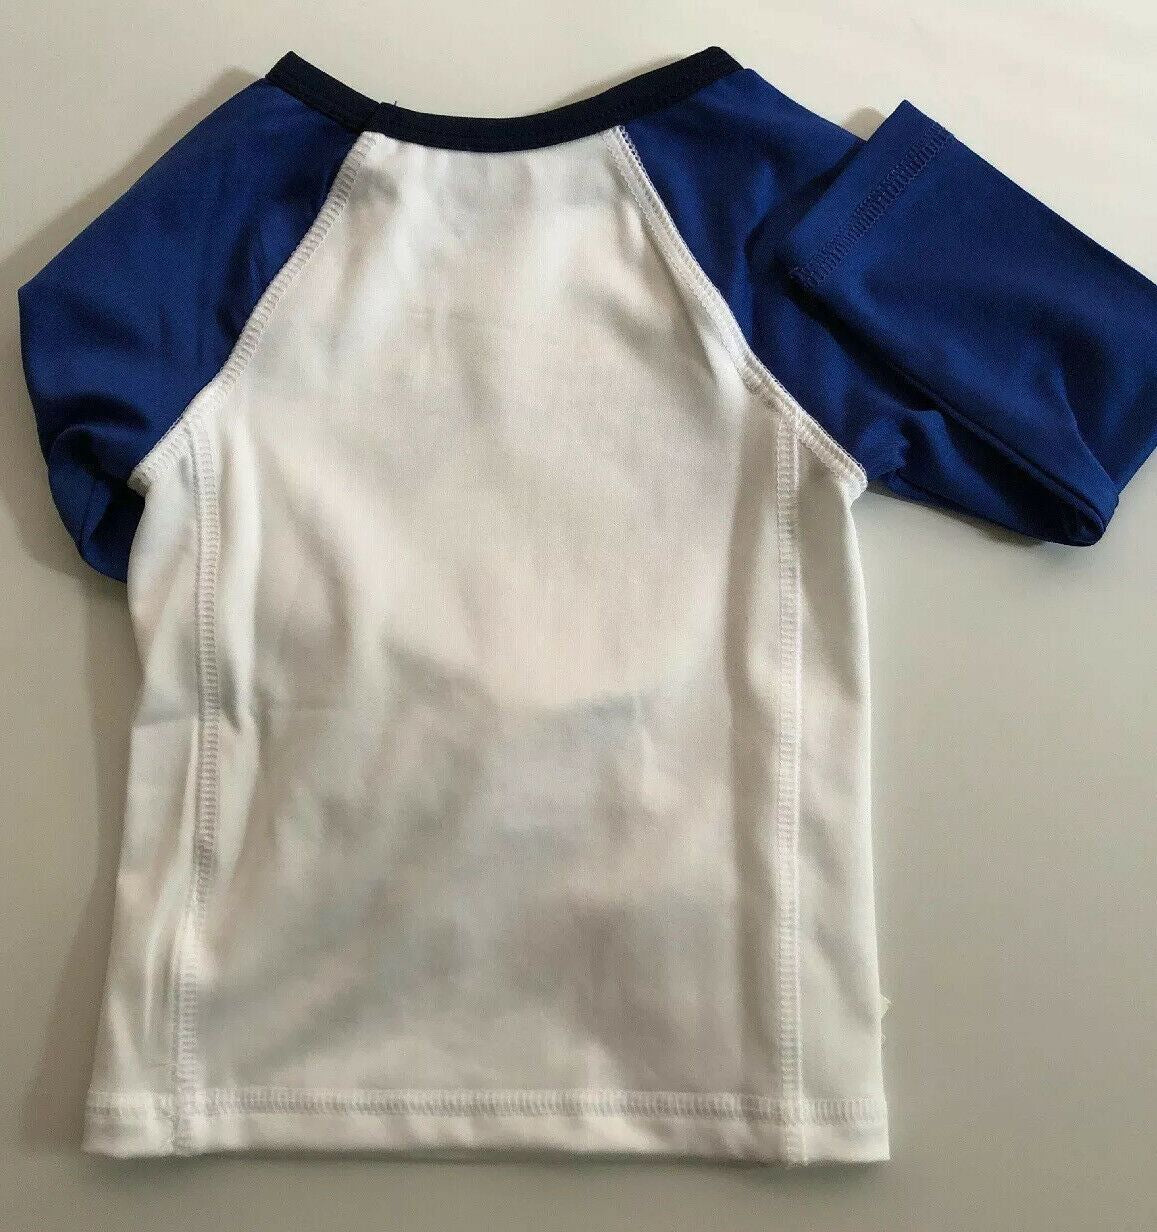 NWT $35 Polo Ralph Lauren Baby Boys Surfer Bear Rash Guard 6M